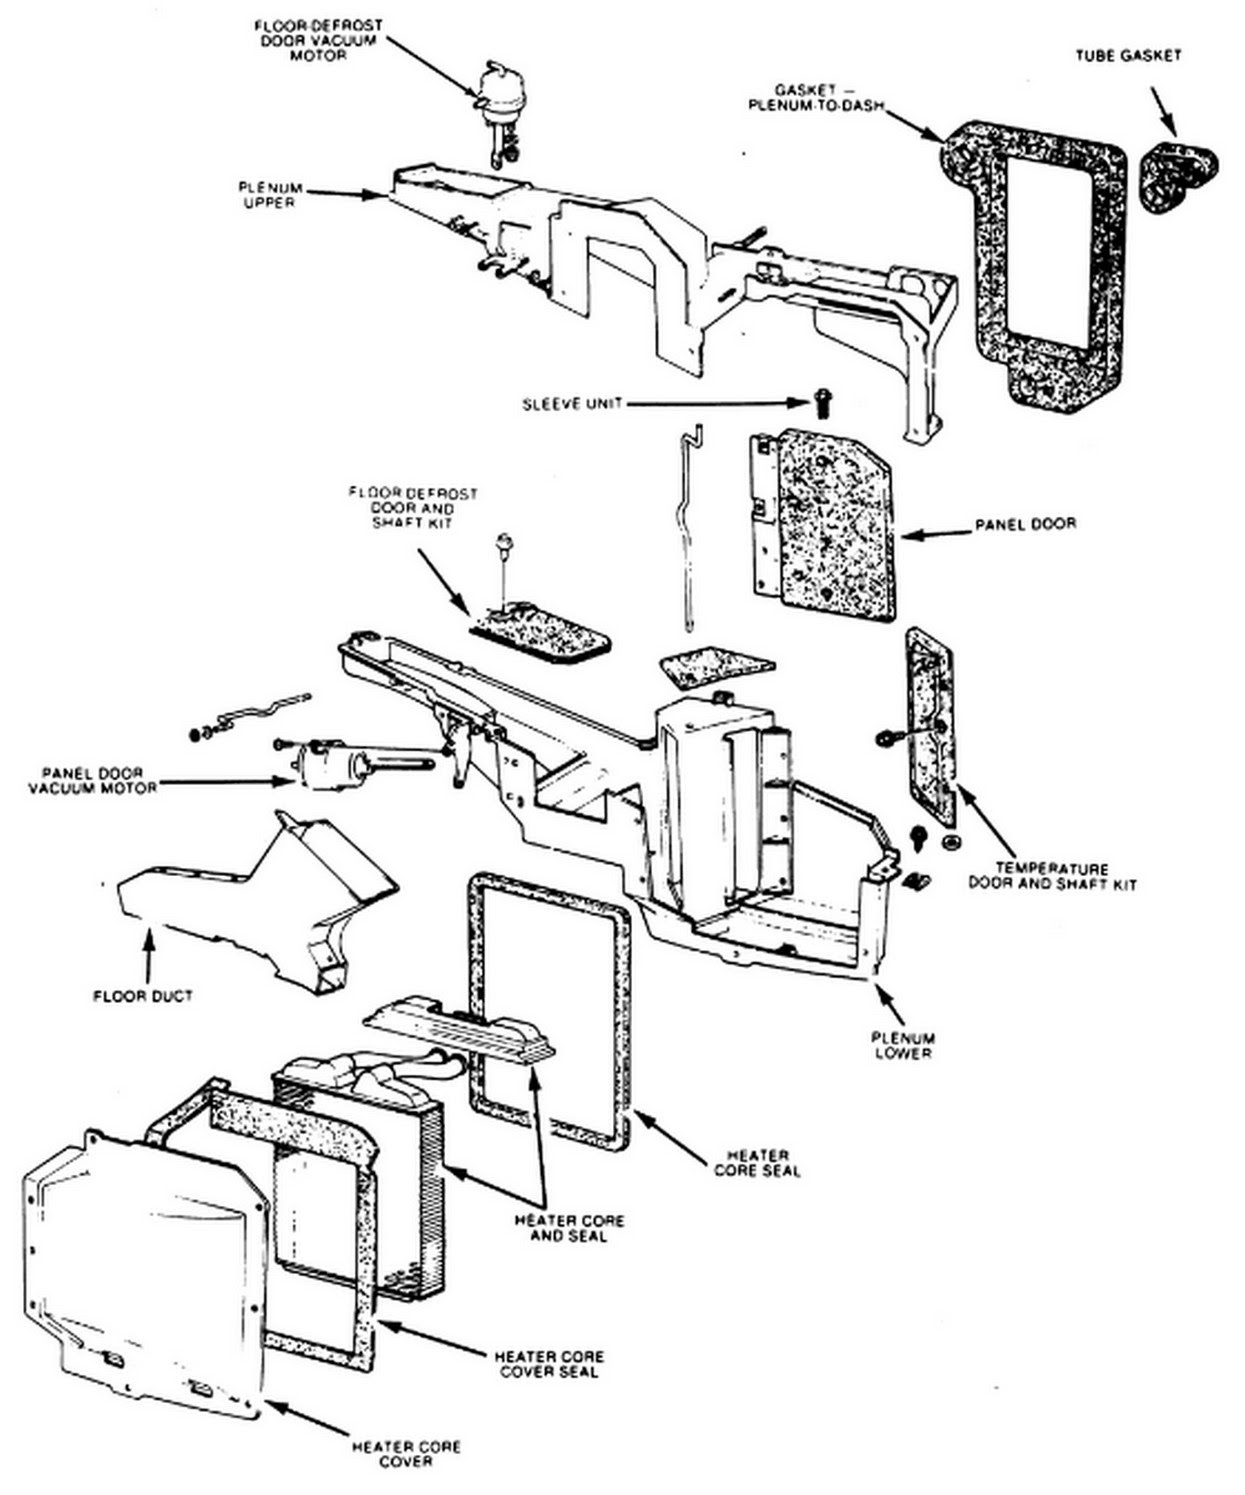 35 1999 Ford Expedition Heater Hose Diagram Wiring Diagram